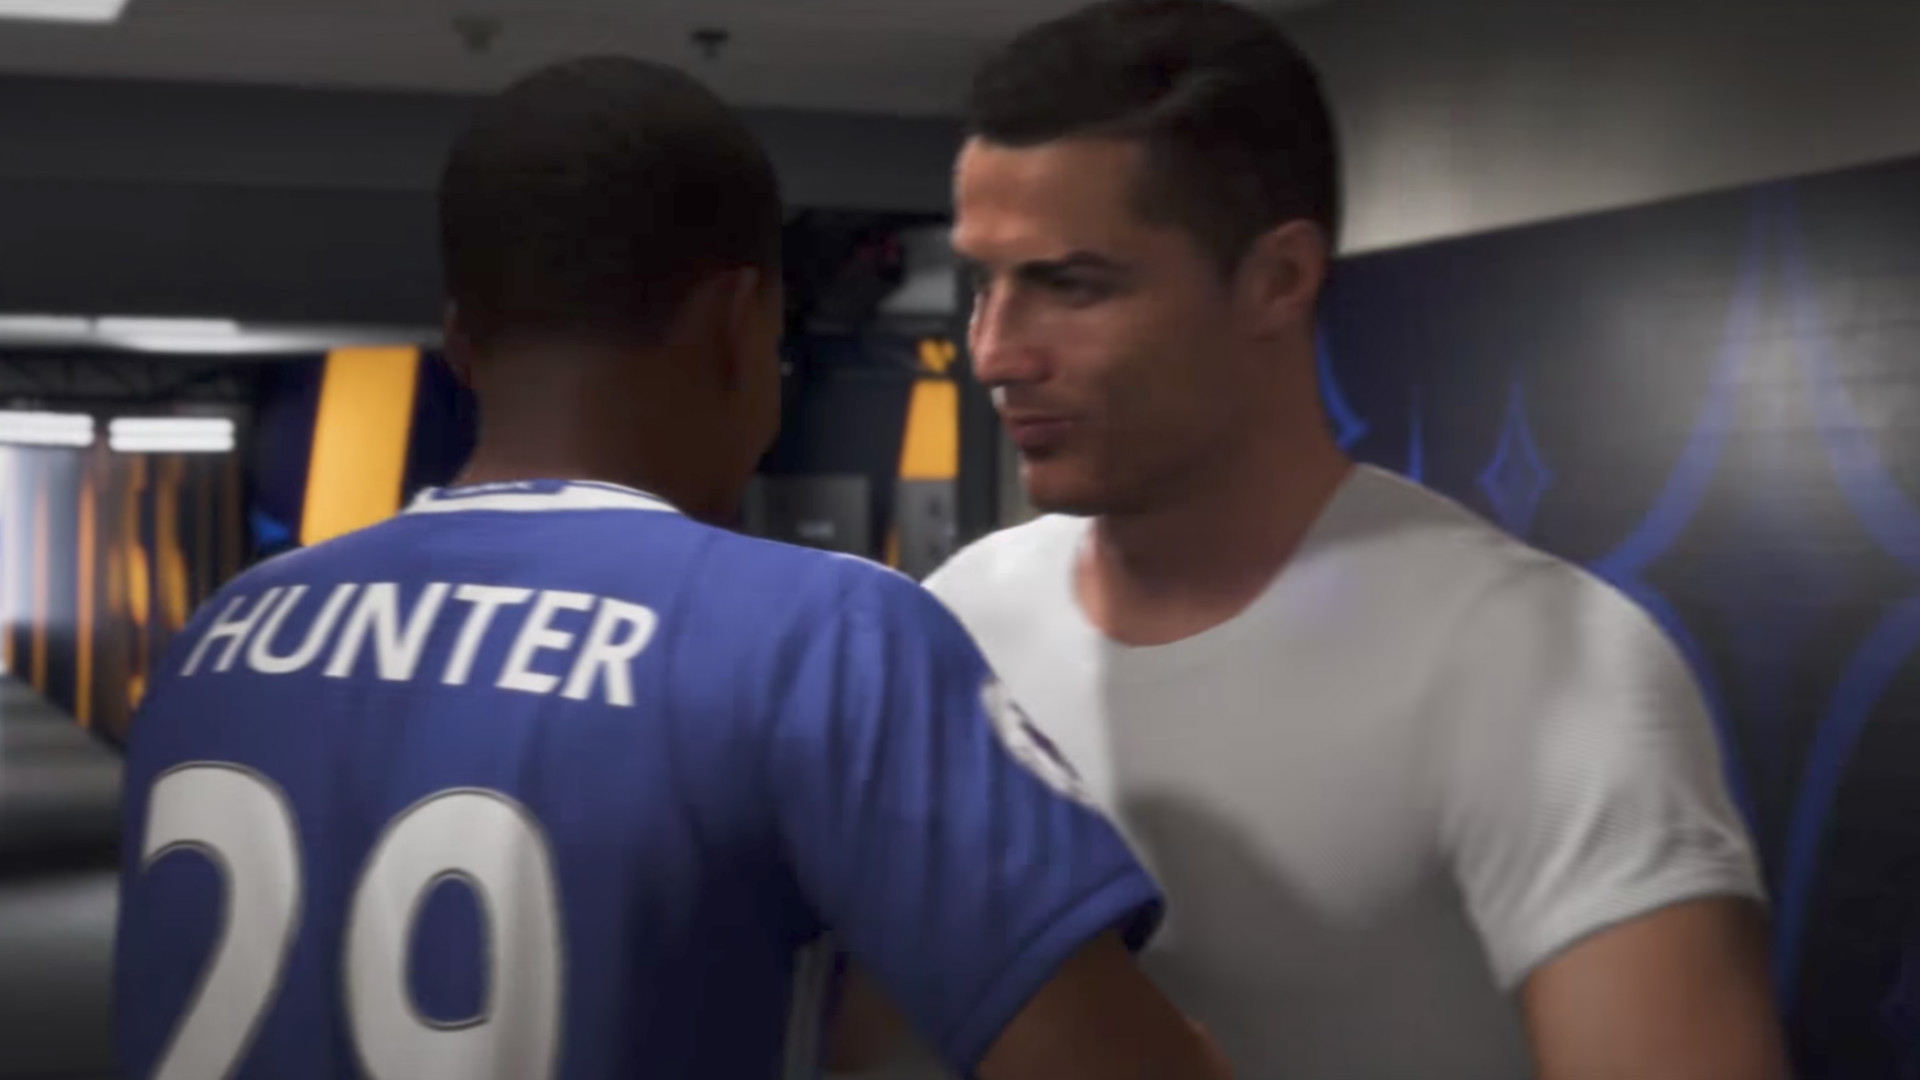 the journey in fifa 18 alex hunter 39 s story so far what. Black Bedroom Furniture Sets. Home Design Ideas